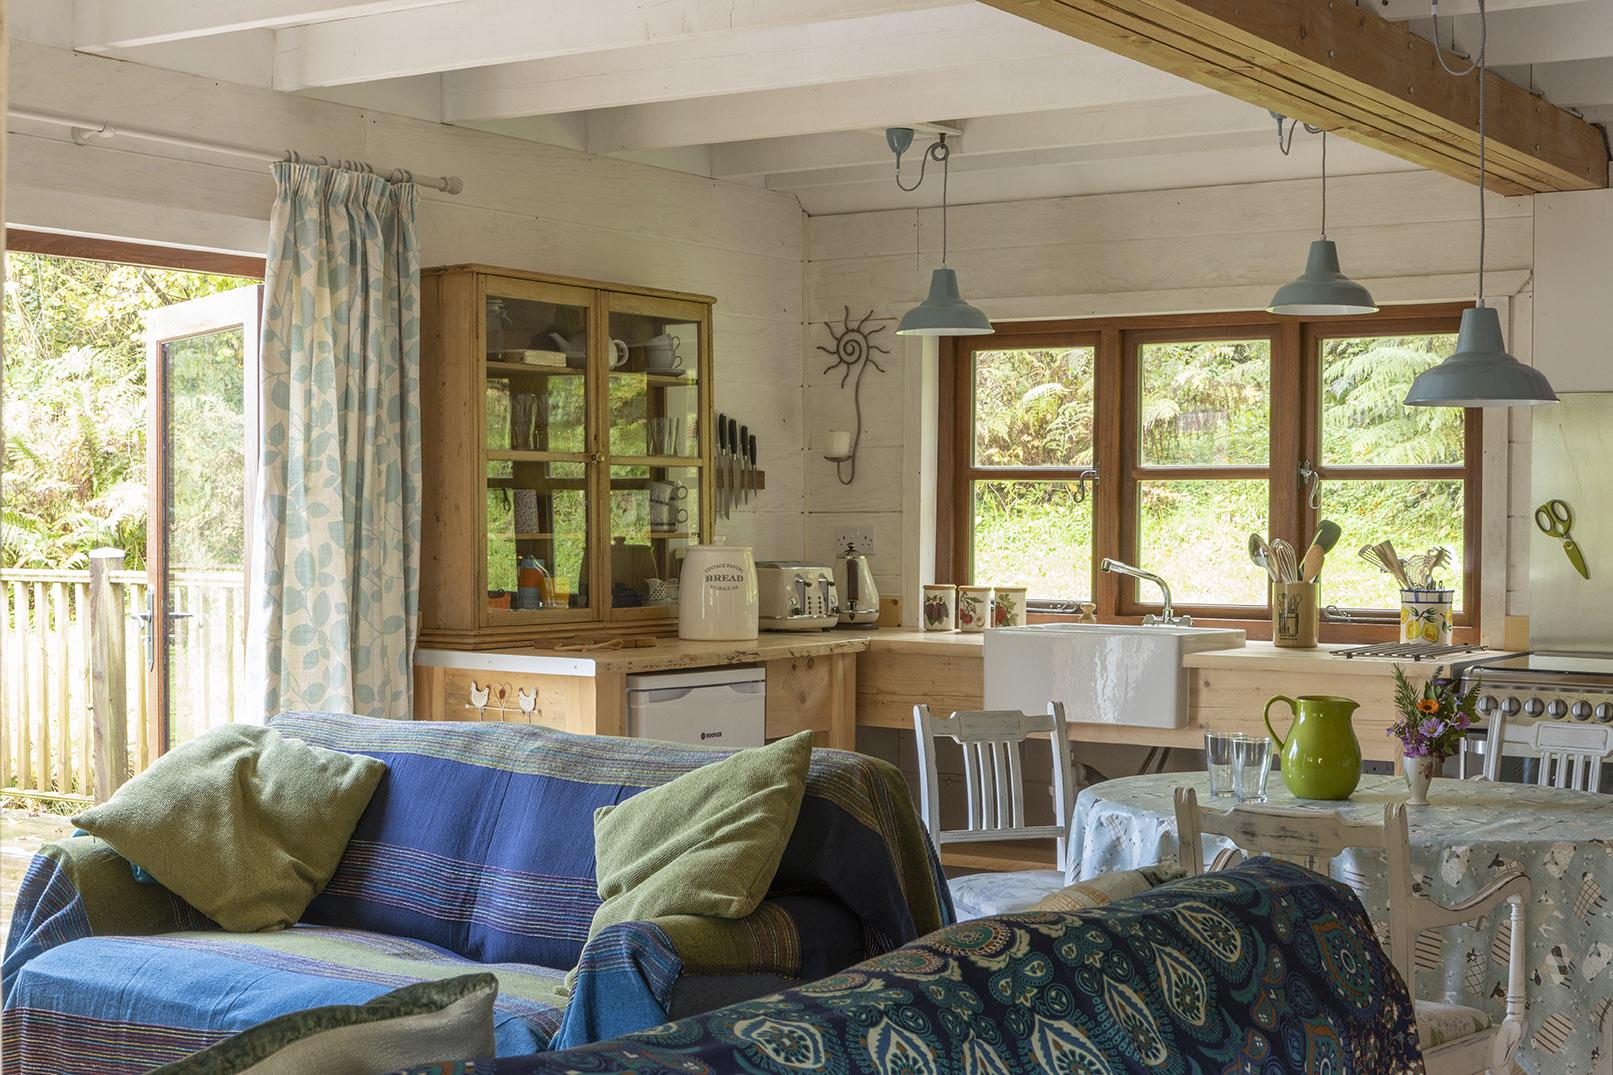 Self-Catering in South West England holidays at Cool Places